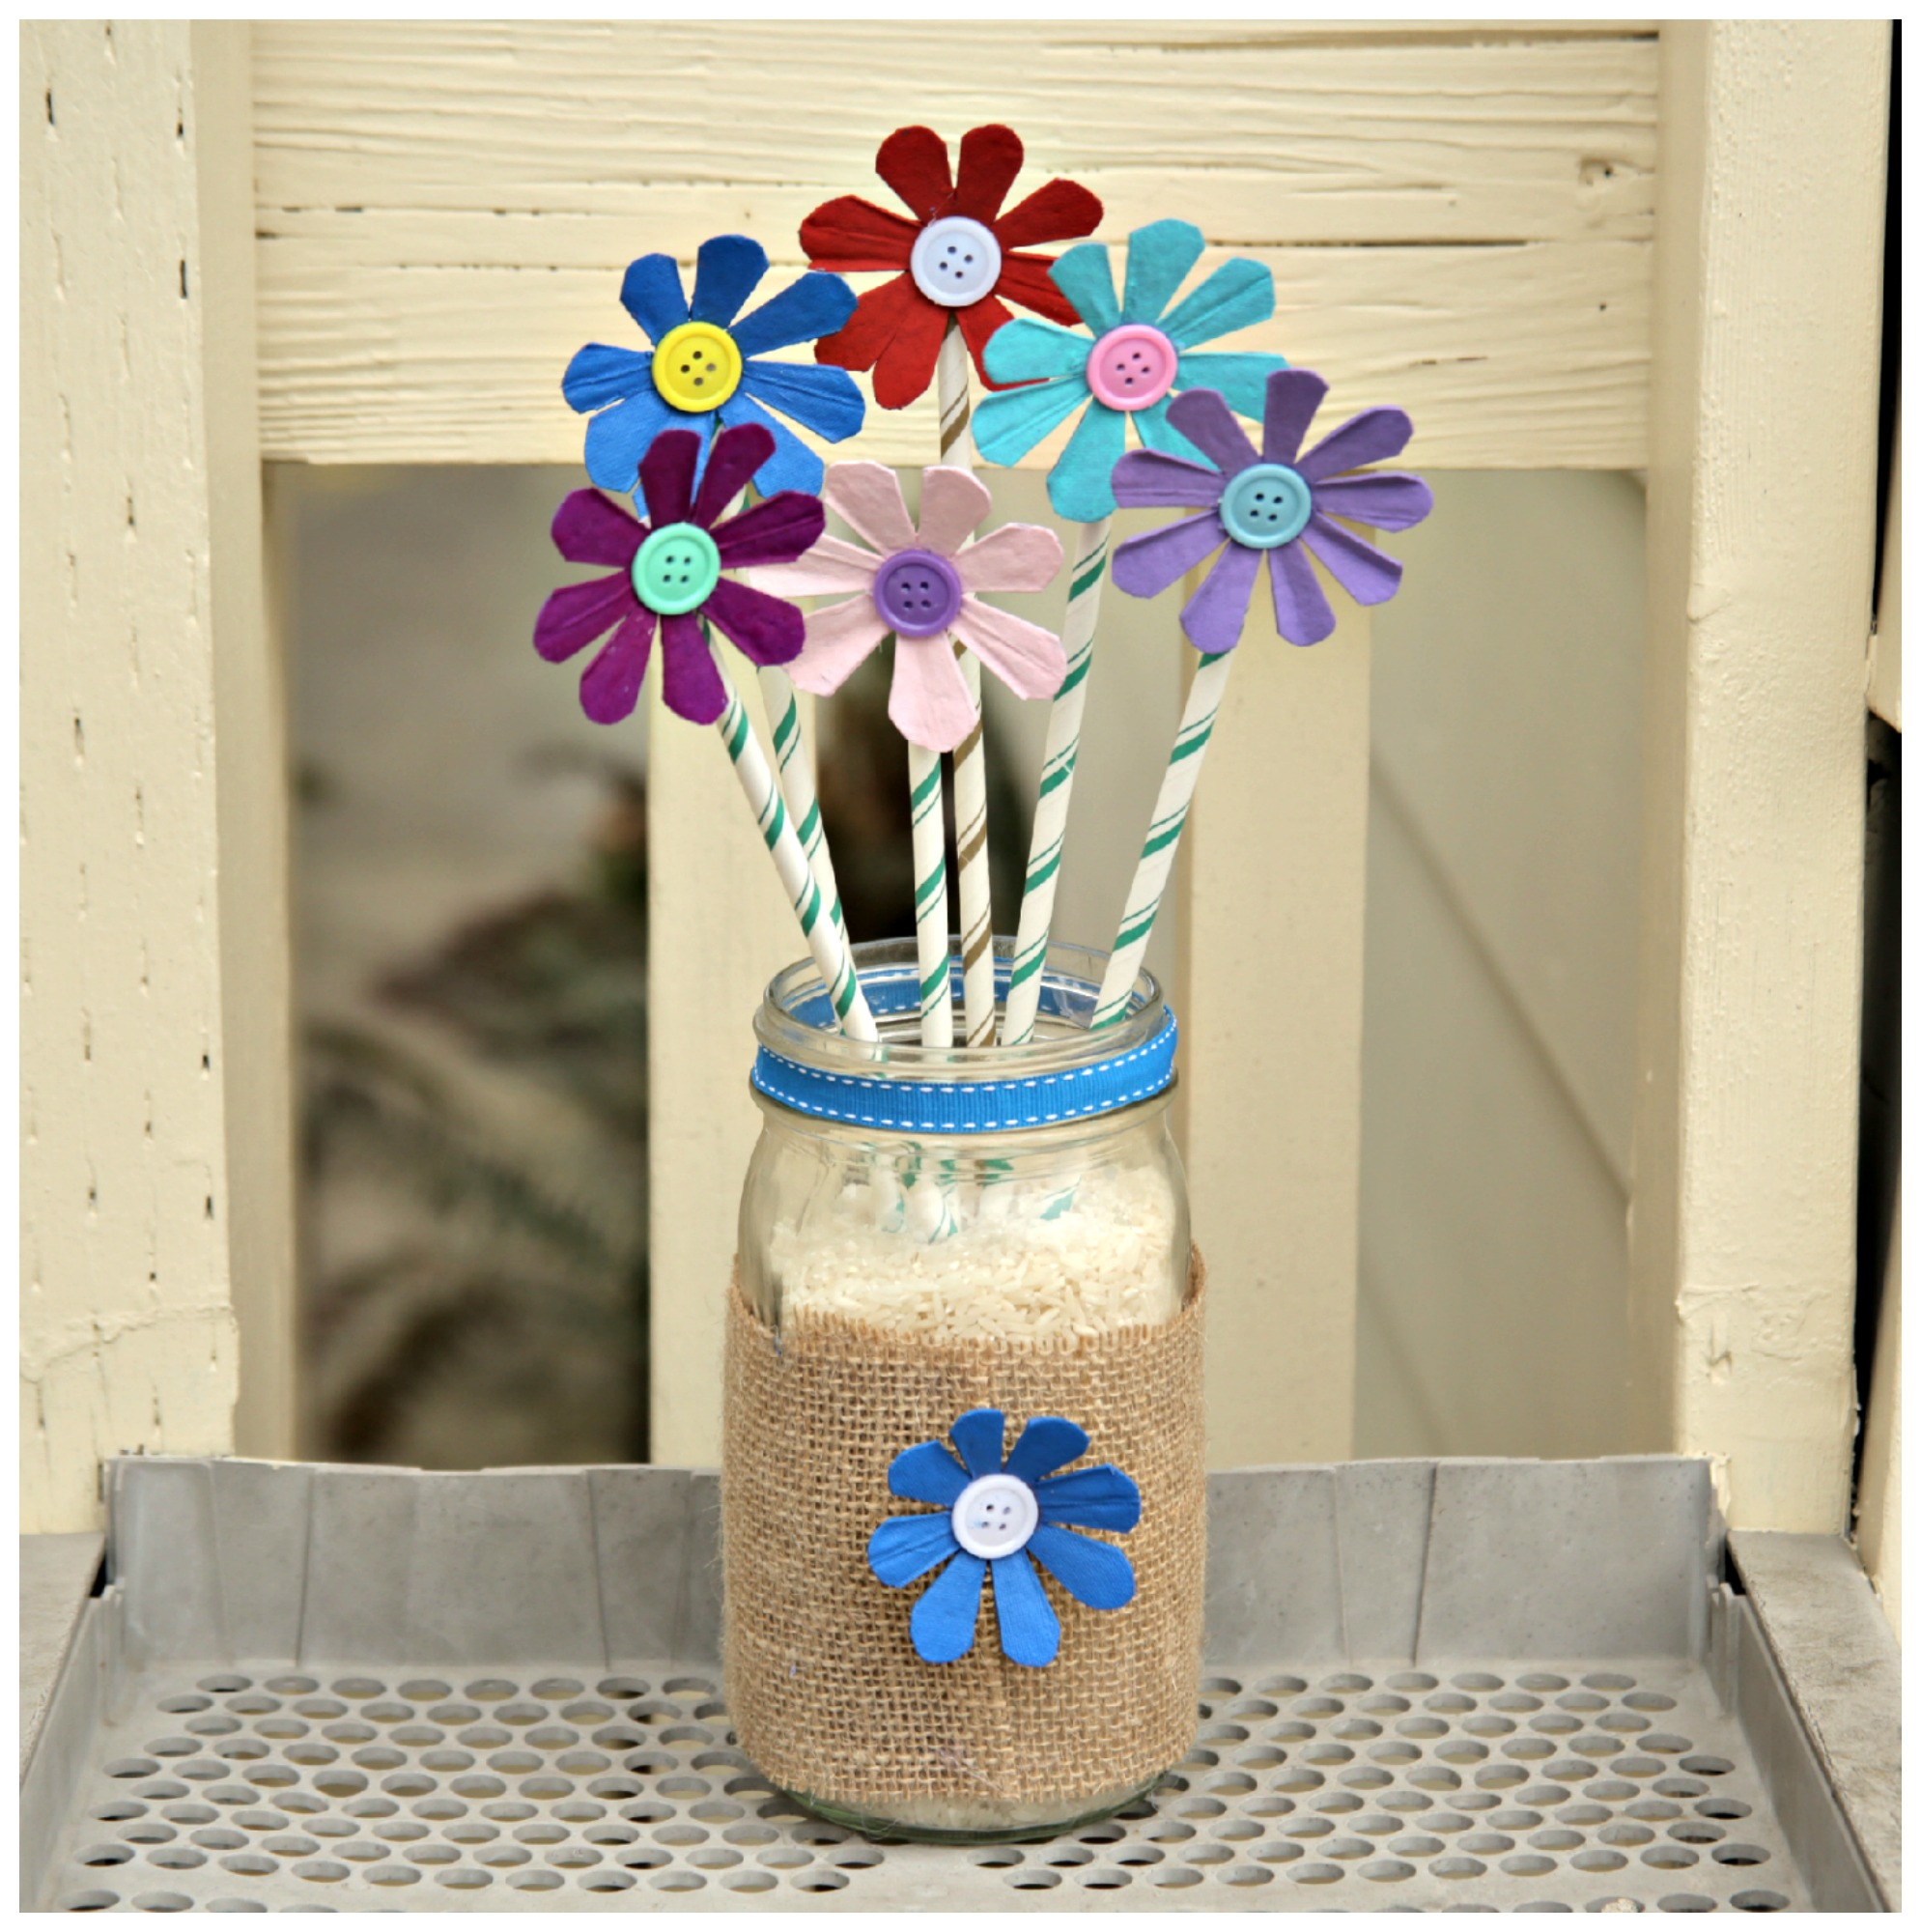 6 earth day crafts from recycled materials kix cereal for Cool things to make out of recycled materials